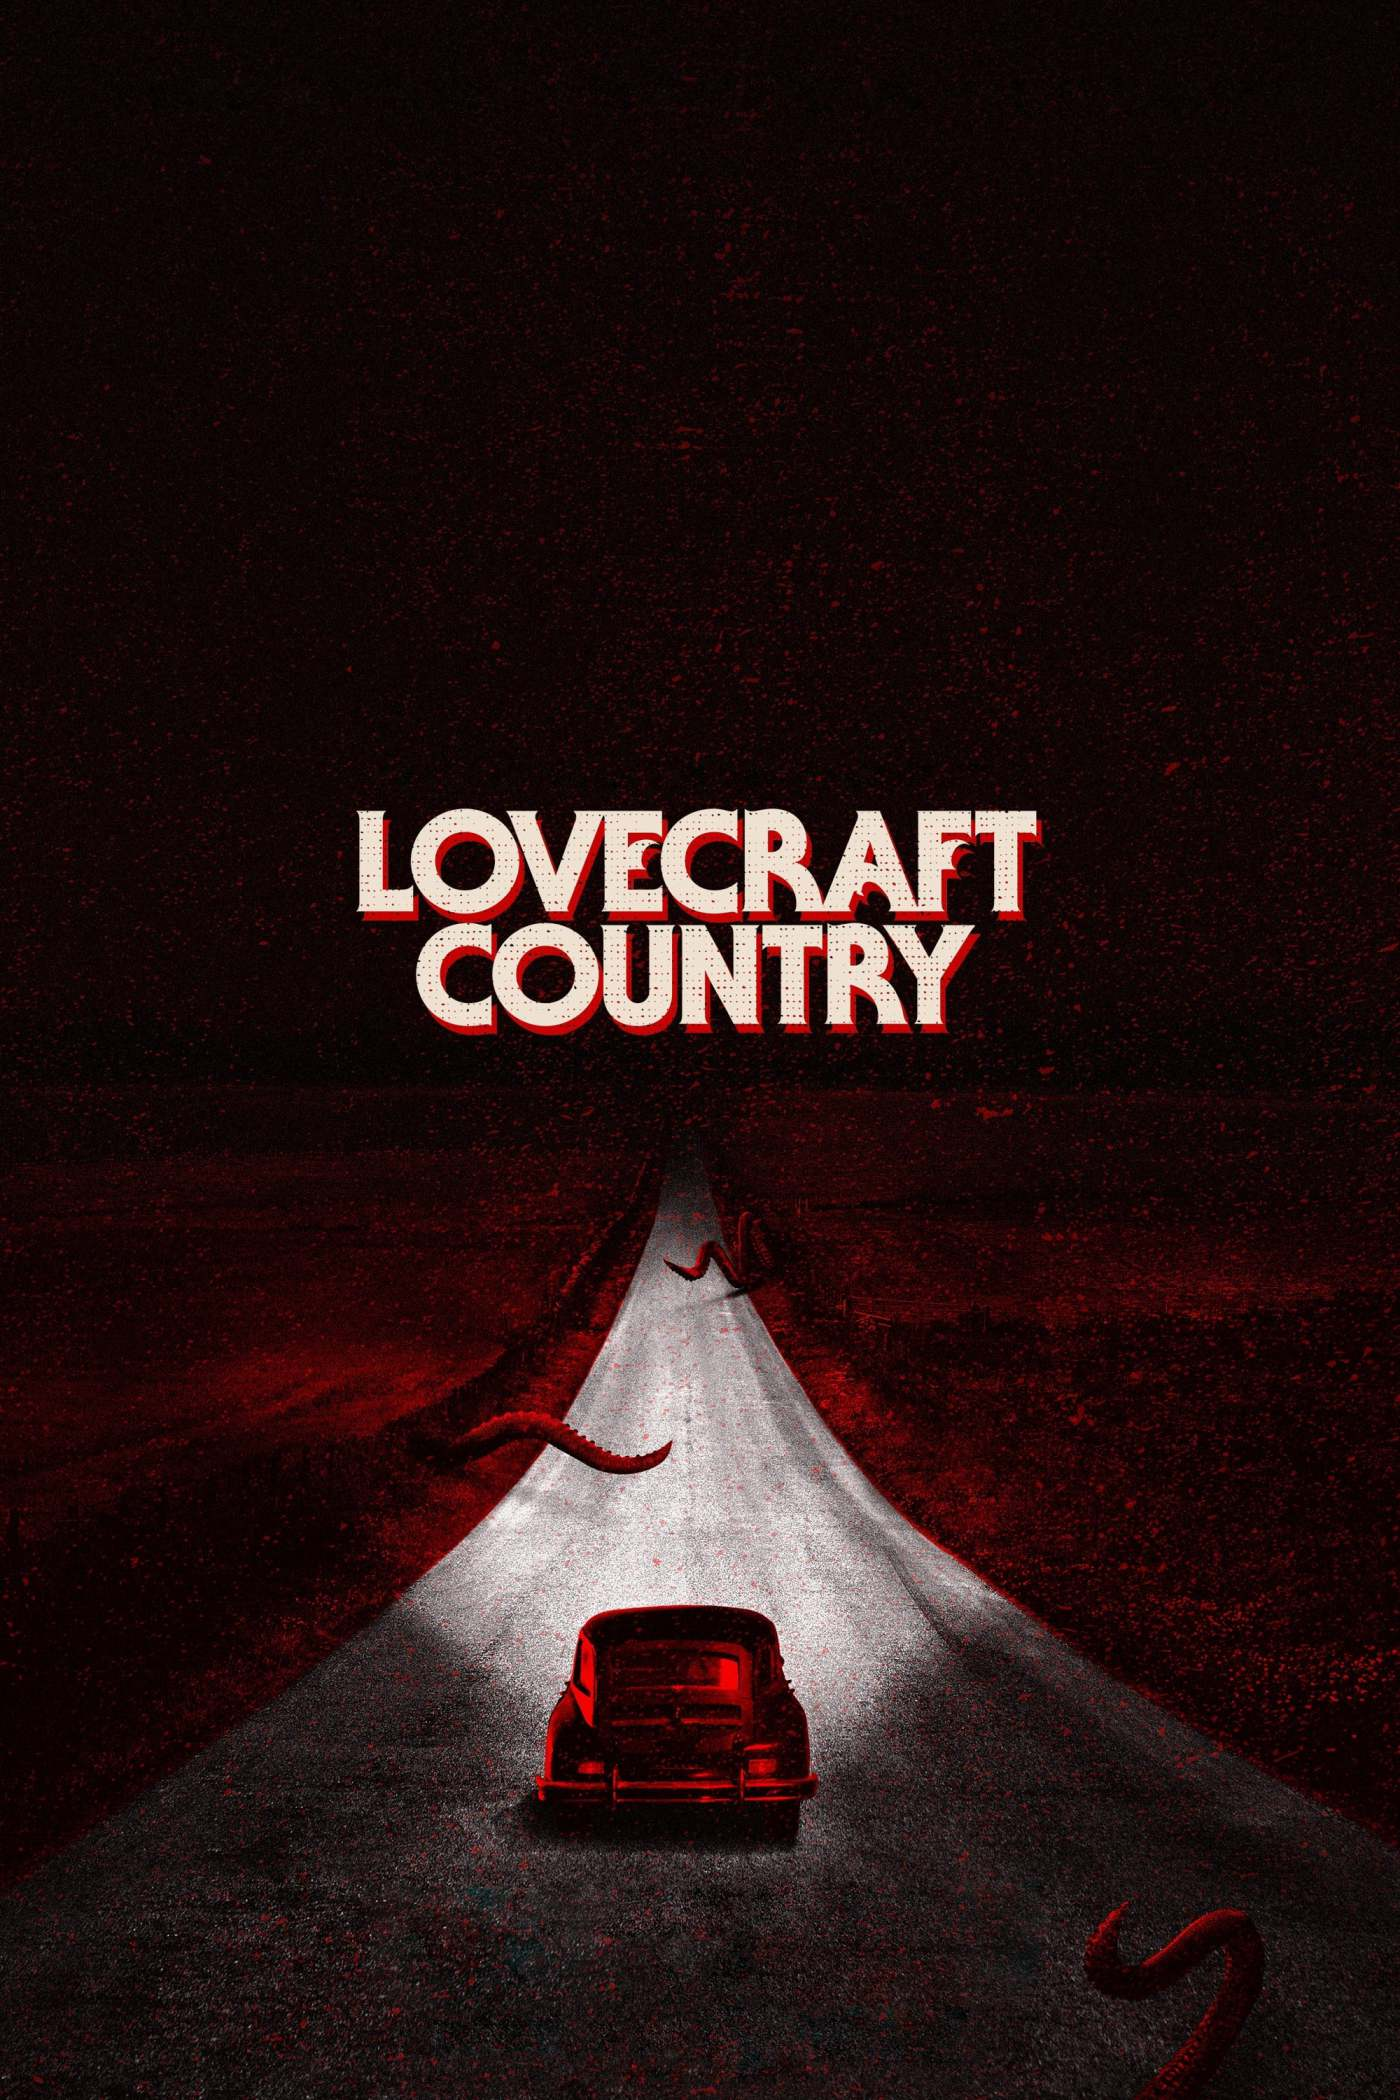 lovecraft-country-poster-01